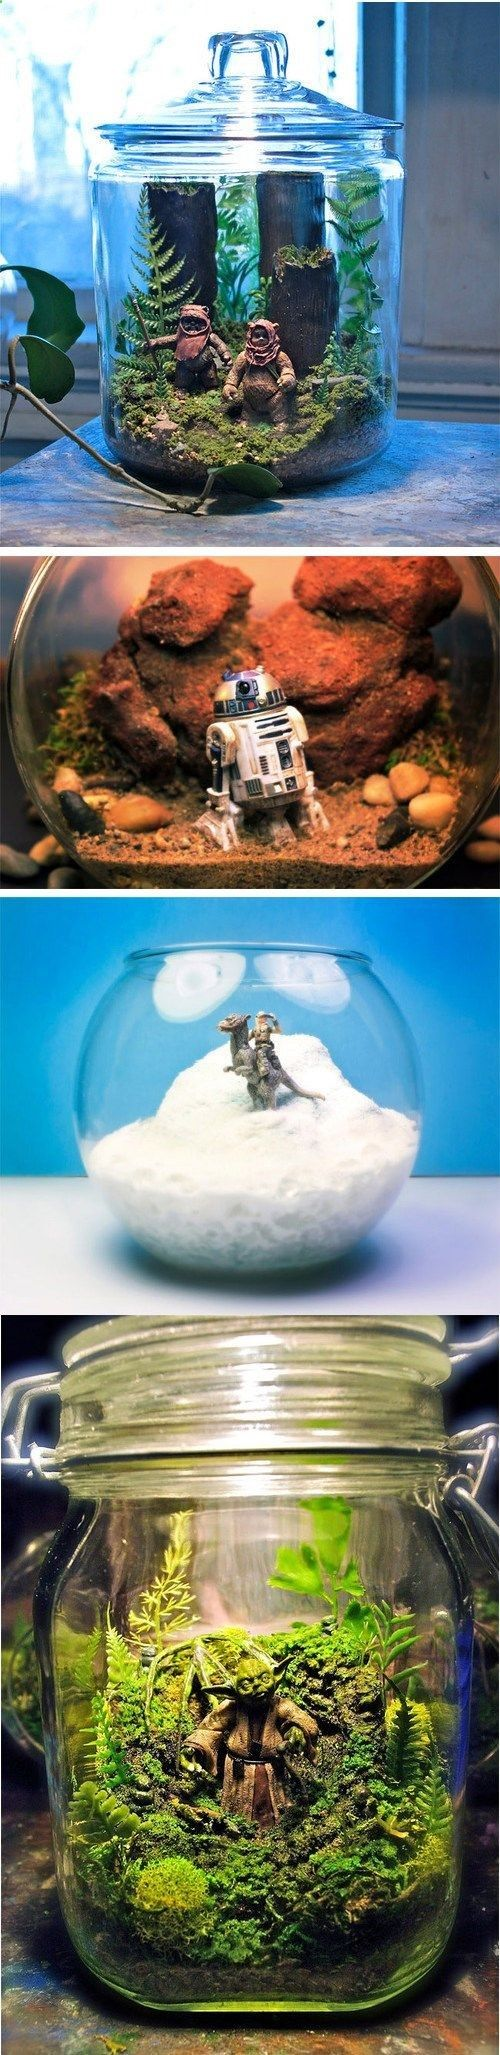 Check Out 22 Ways of Taking Star Wars to Your Space!